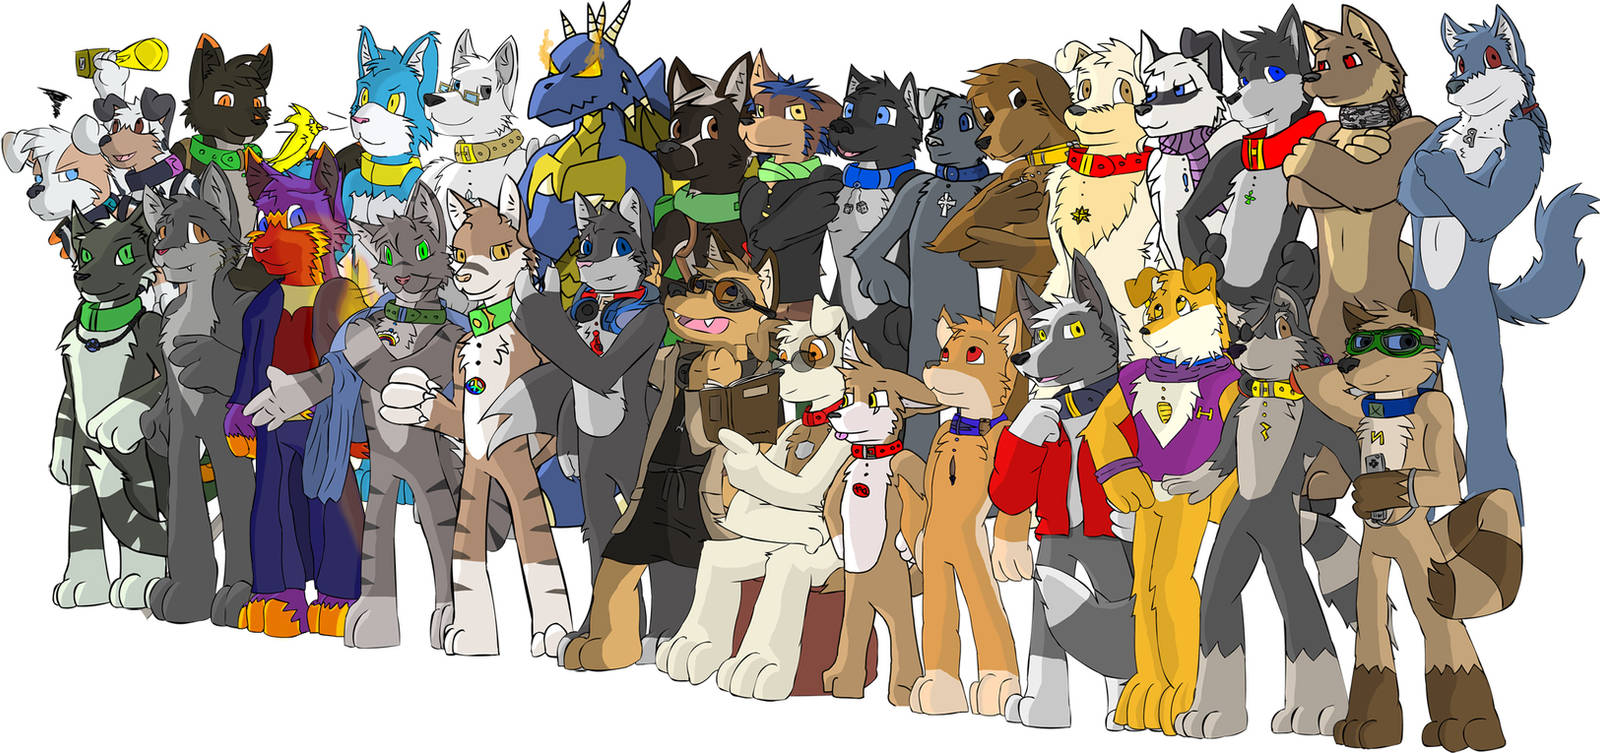 Housepets OOC group picture by Necrath